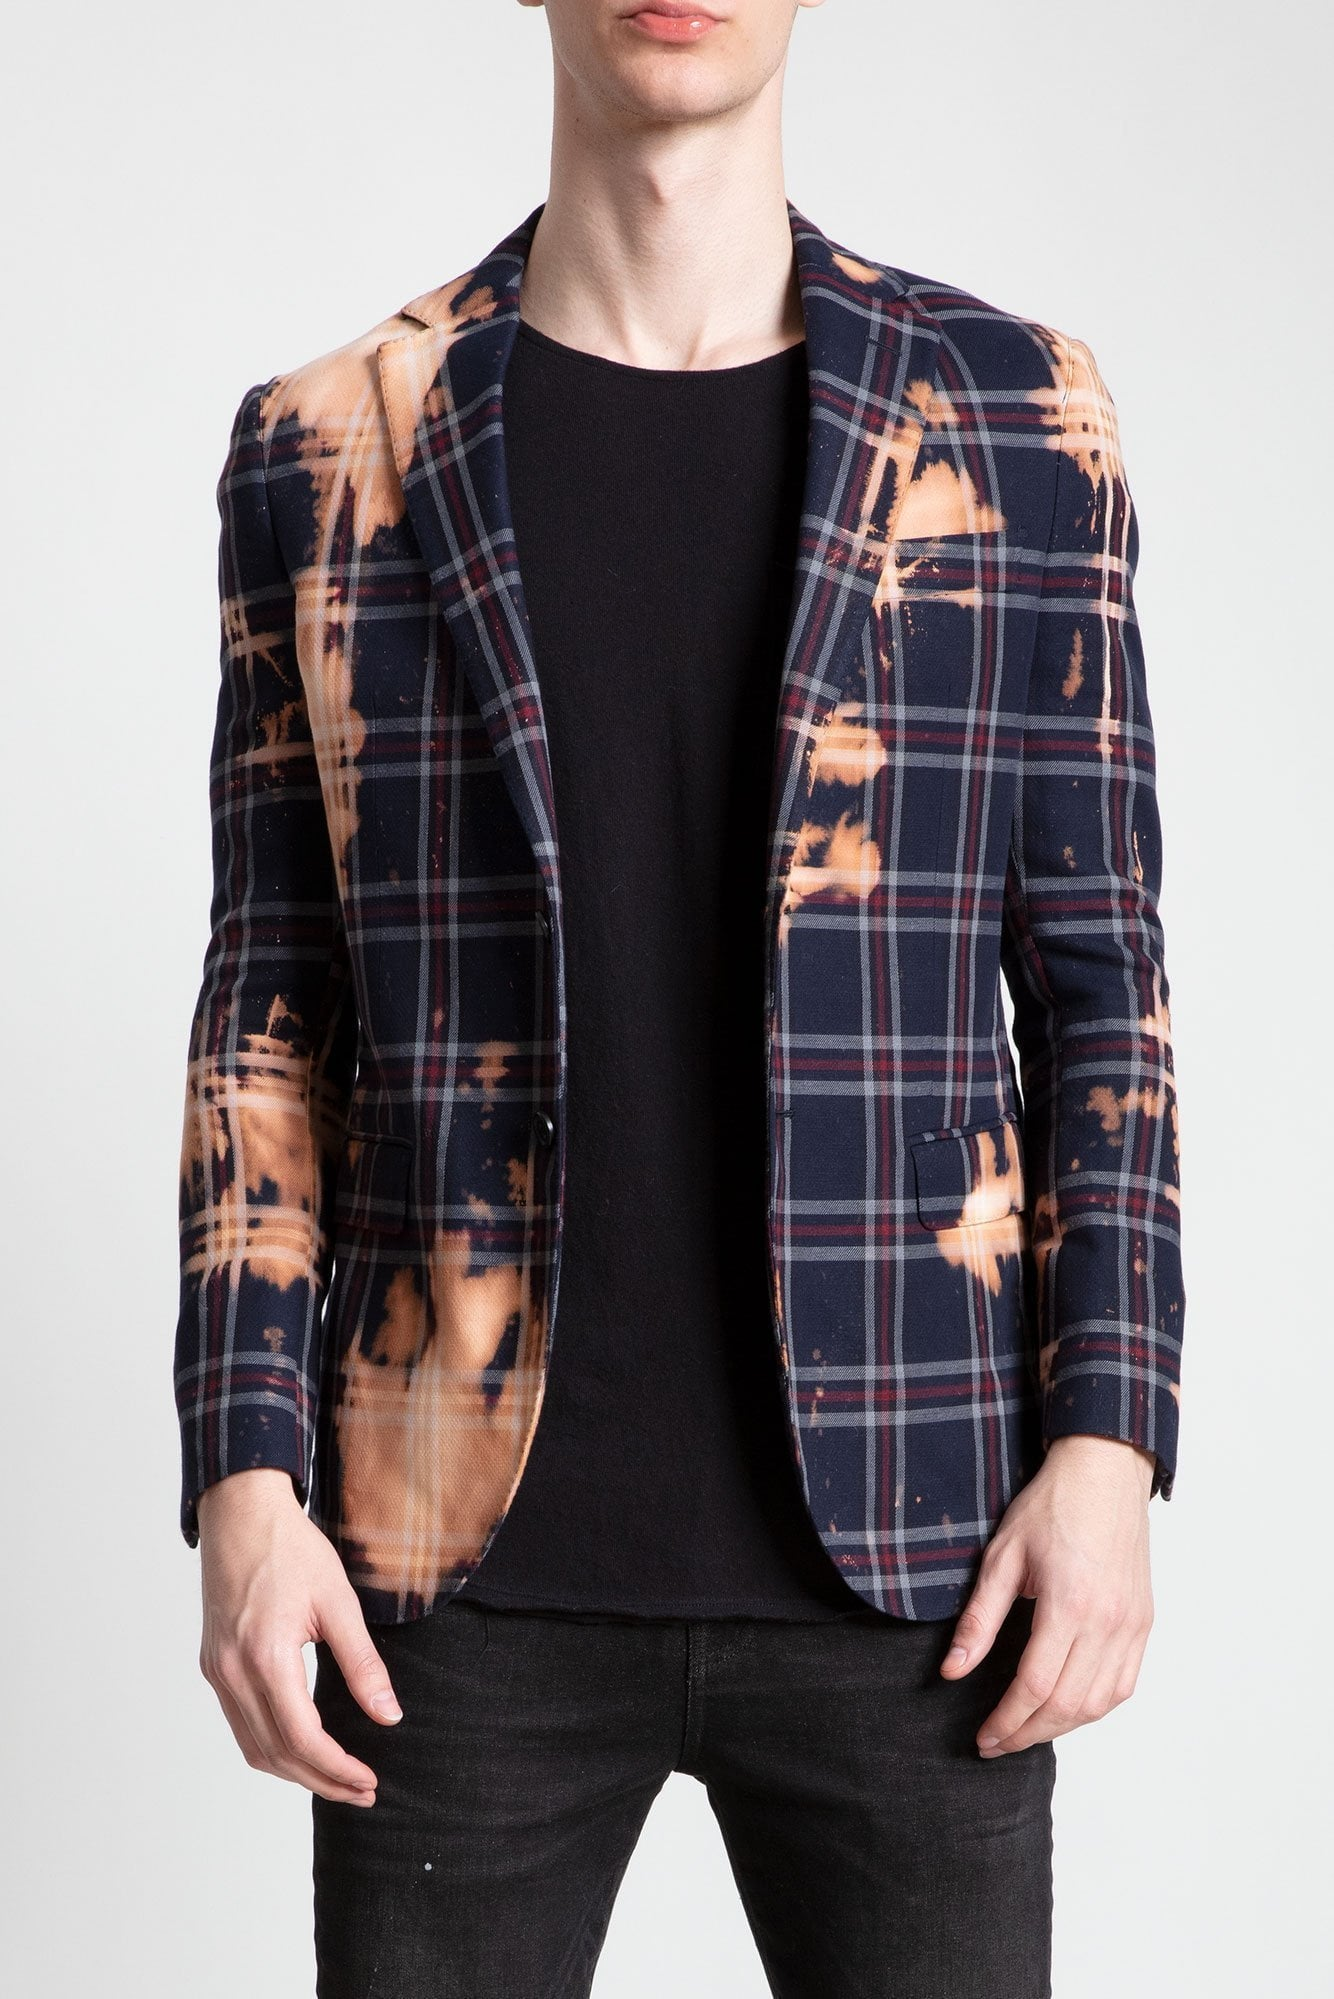 Tailored Blazer - Blue Plaid with Bleach Stains